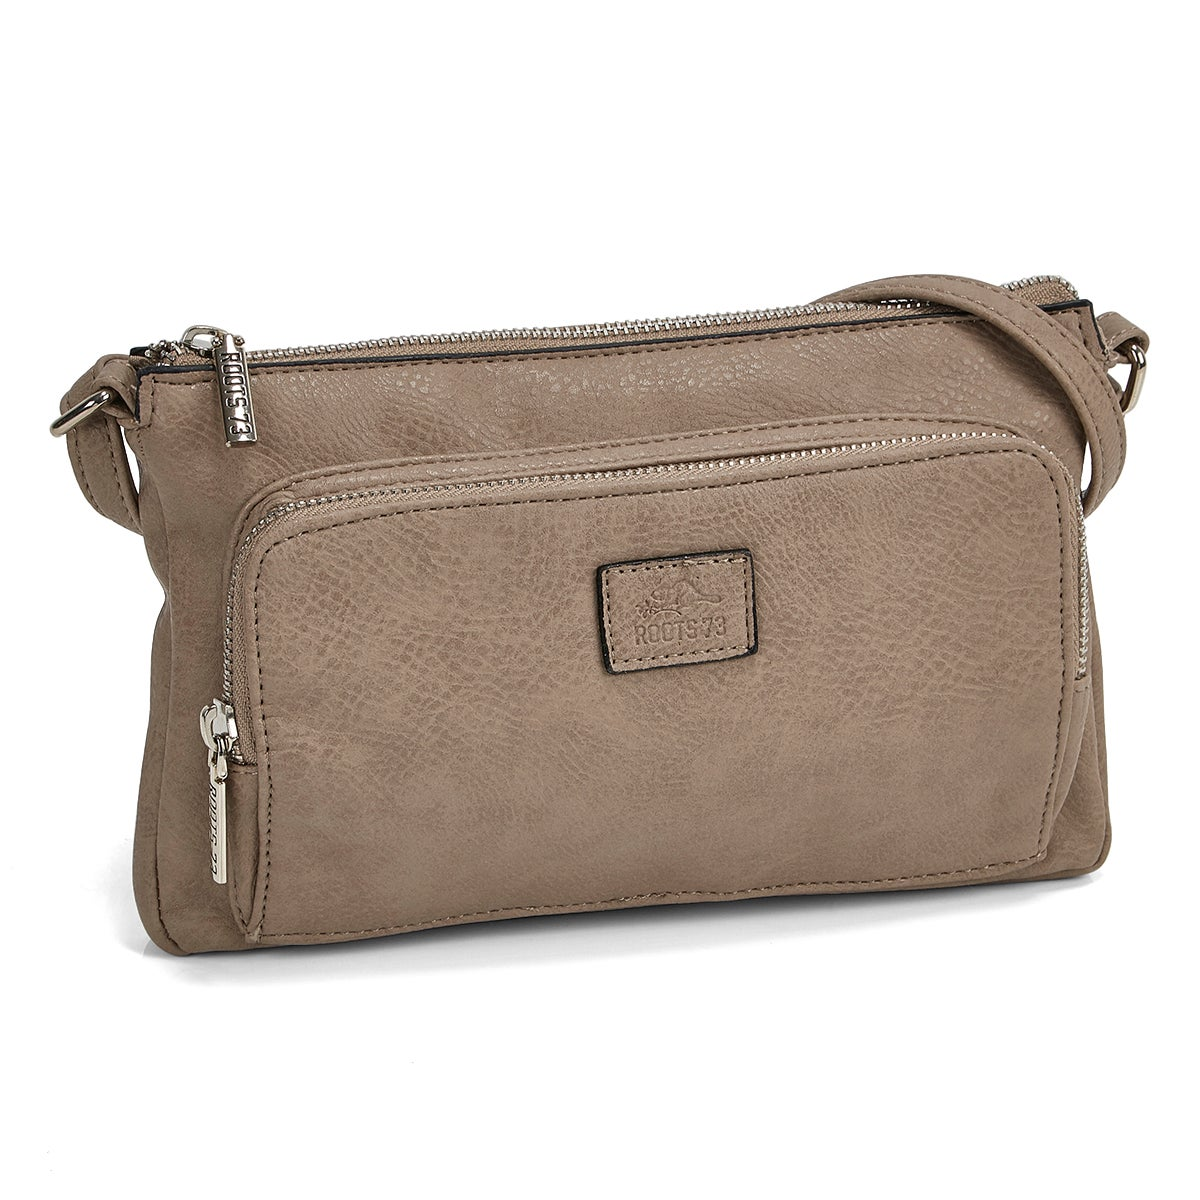 Women's ROOTS73 R4886 taupe cross body bag